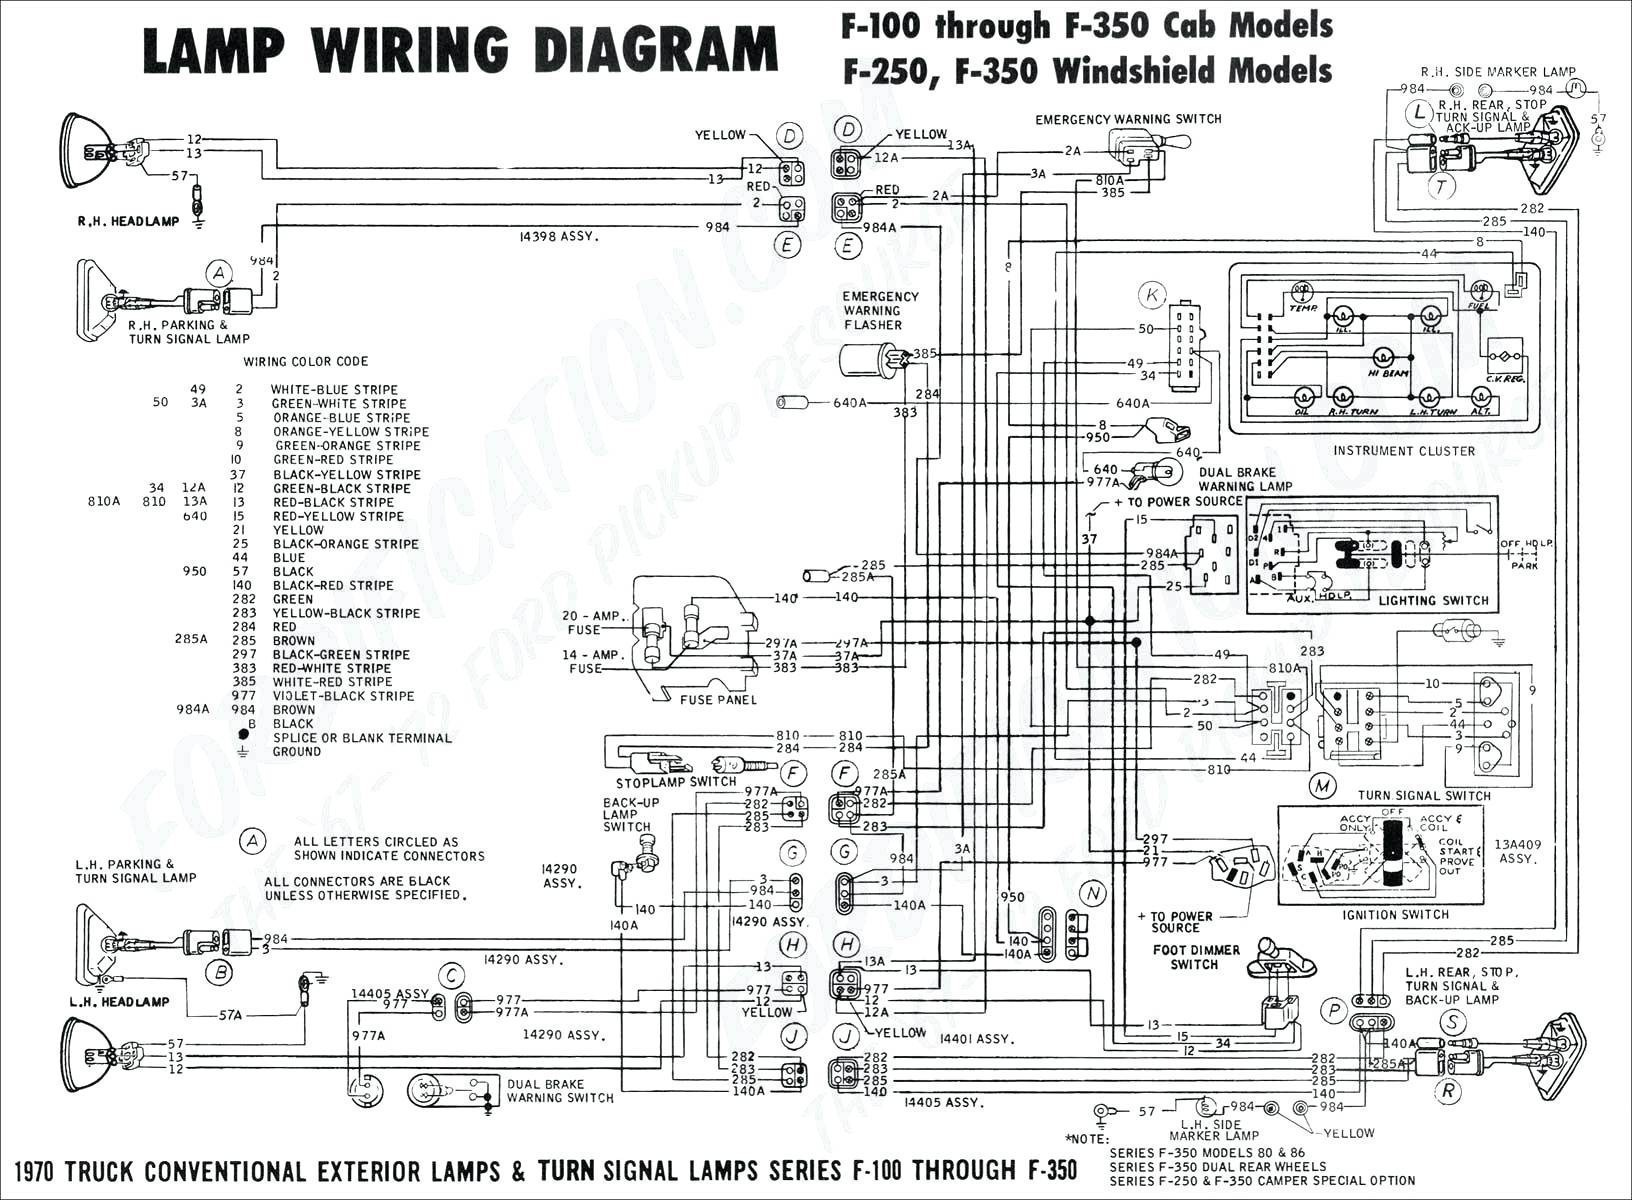 2000 Eclipse Fuse Box Diagram Manual Guide Wiring Wire For Galant Library Rh 38 Codingcommunity De Mitsubishi